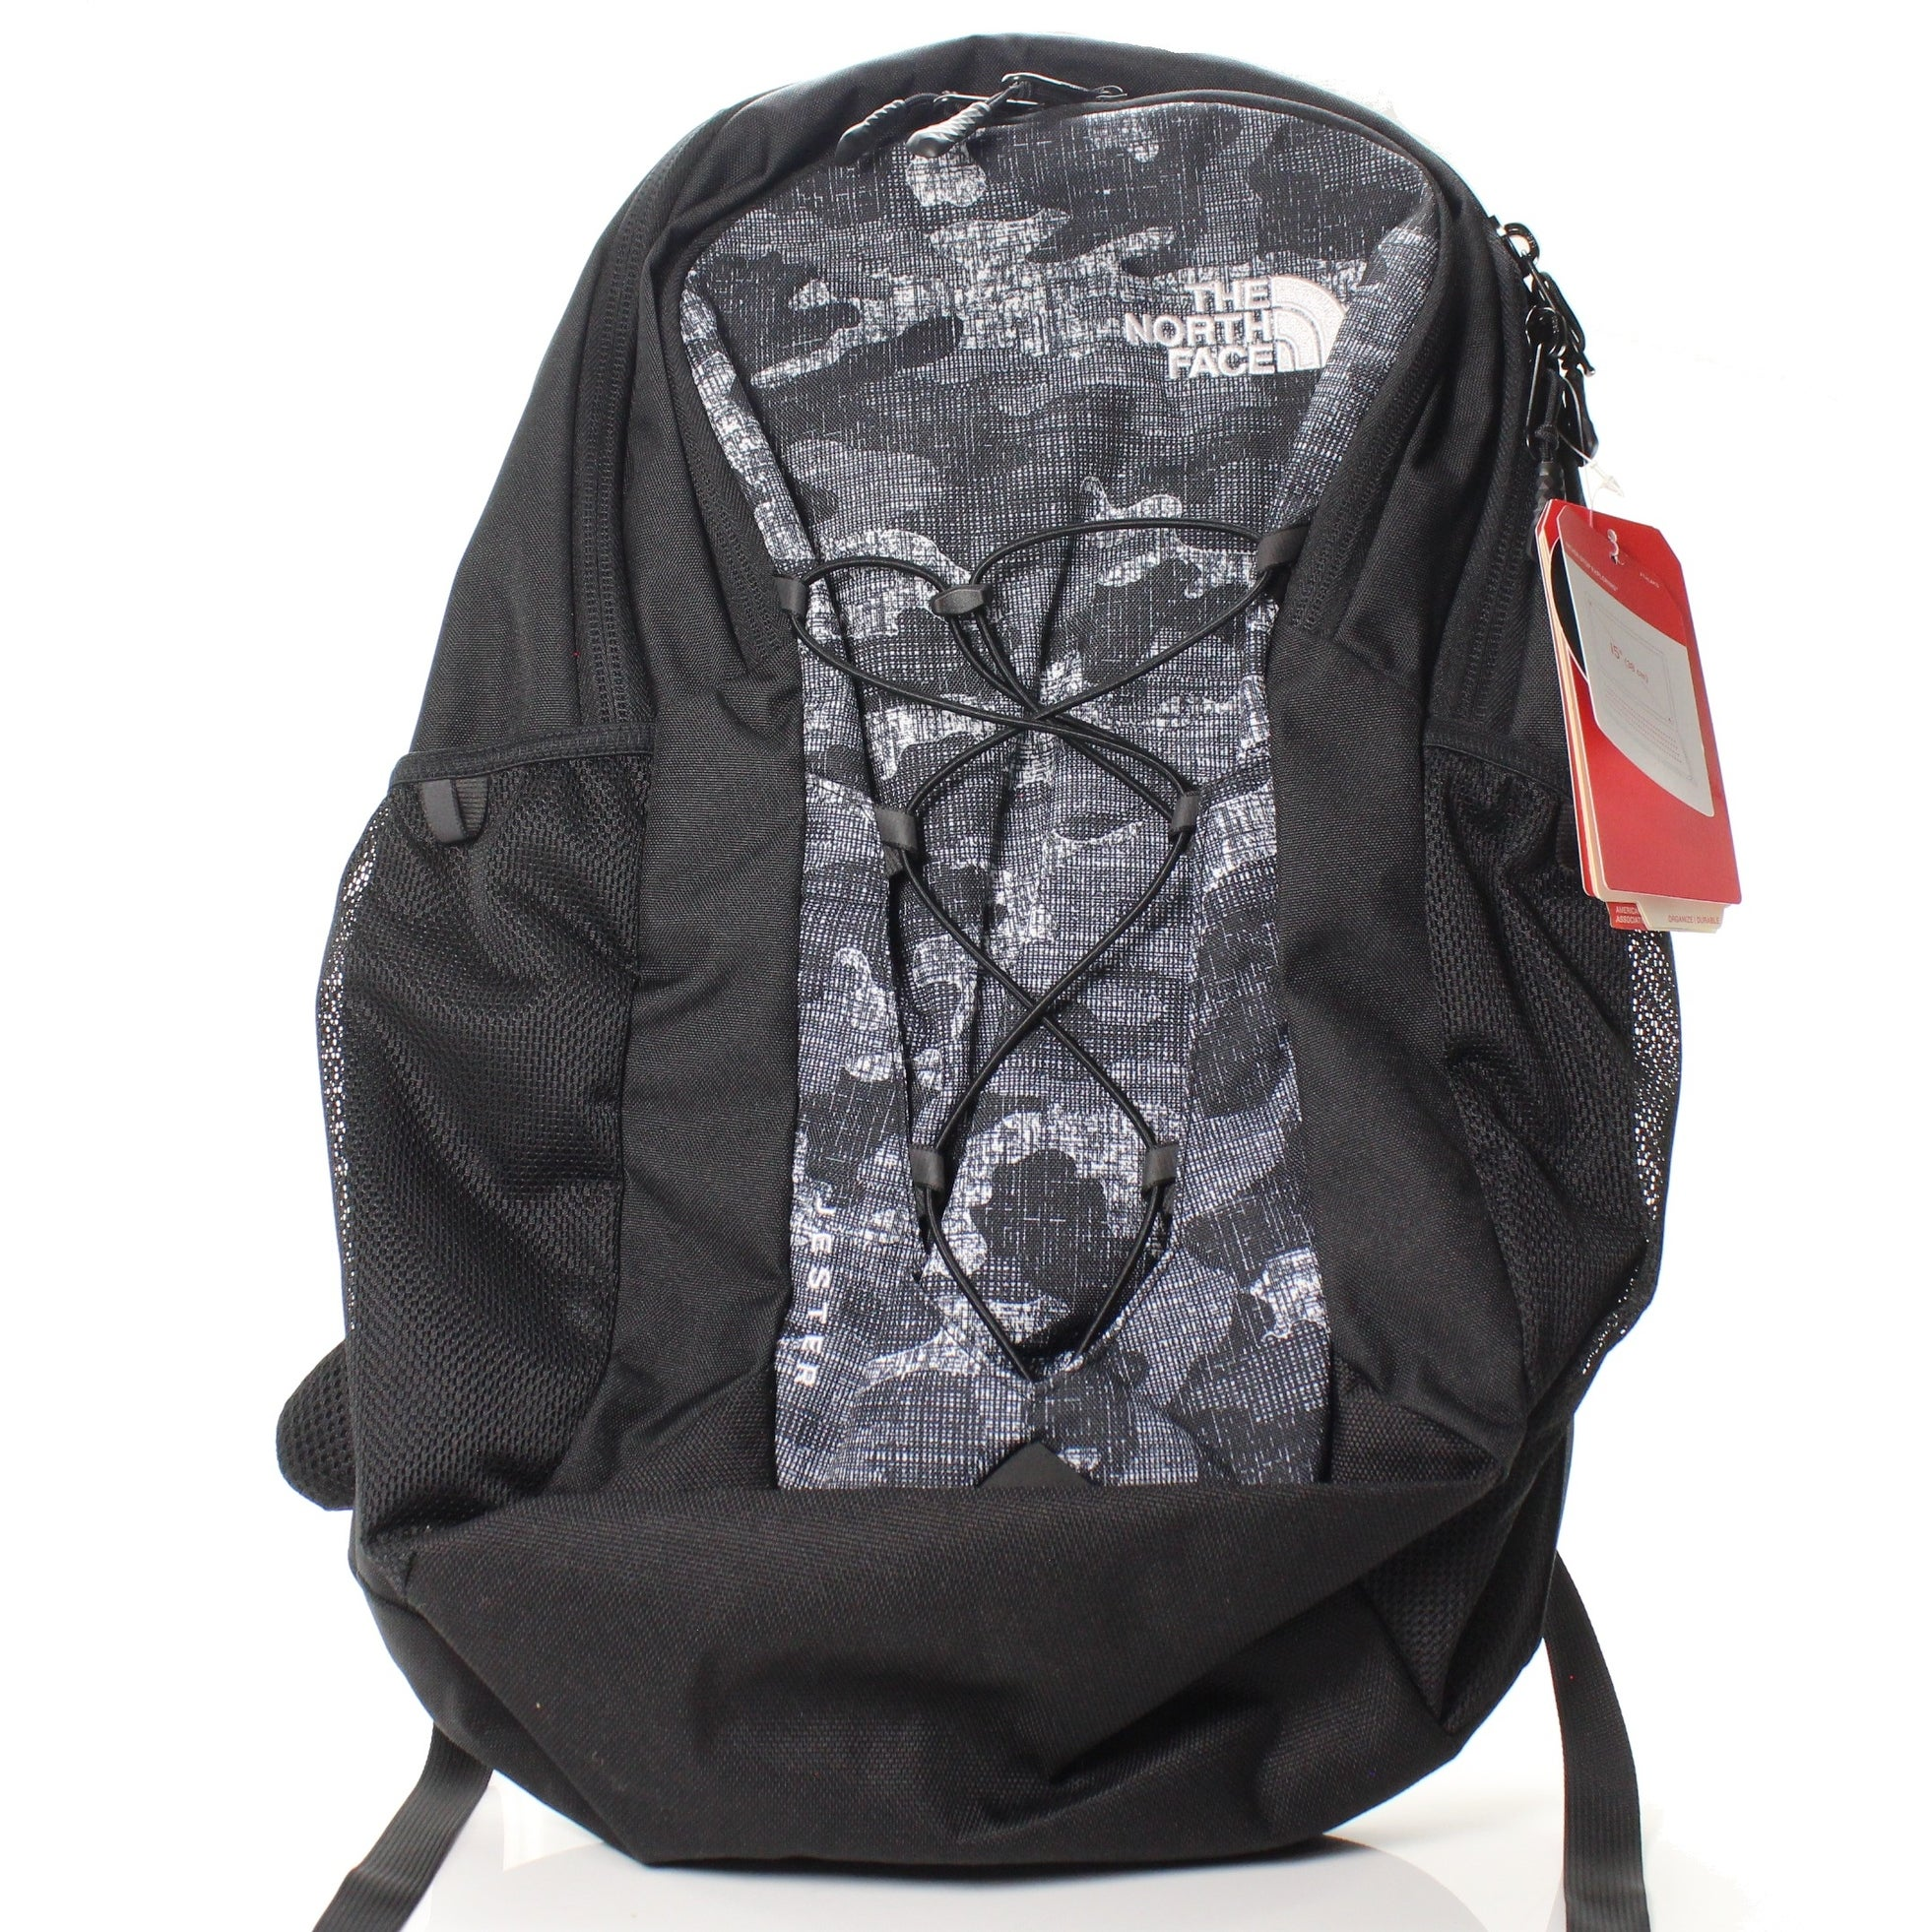 c36bd0bf8 The North Face Backpacks | Find Great Luggage Deals Shopping at ...